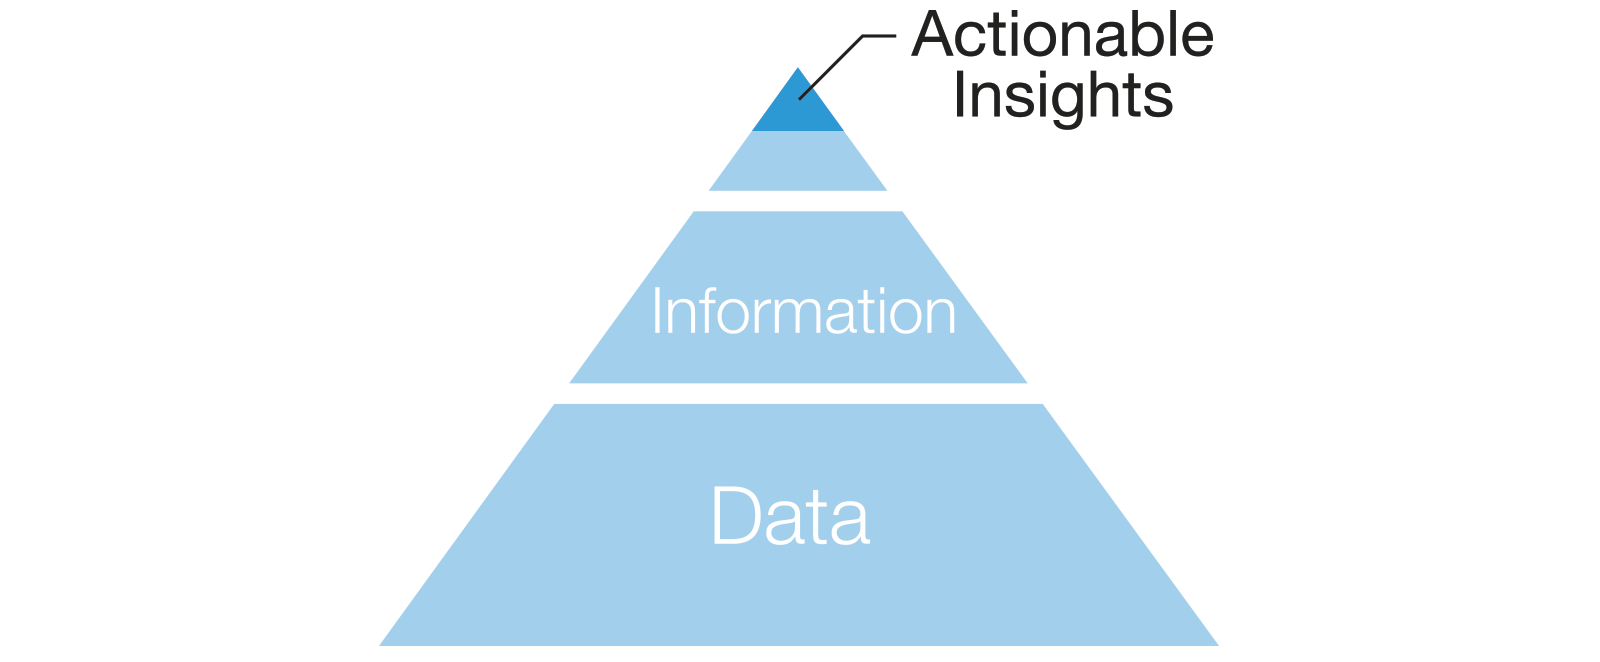 image representing actionable insights pyramid above information and data